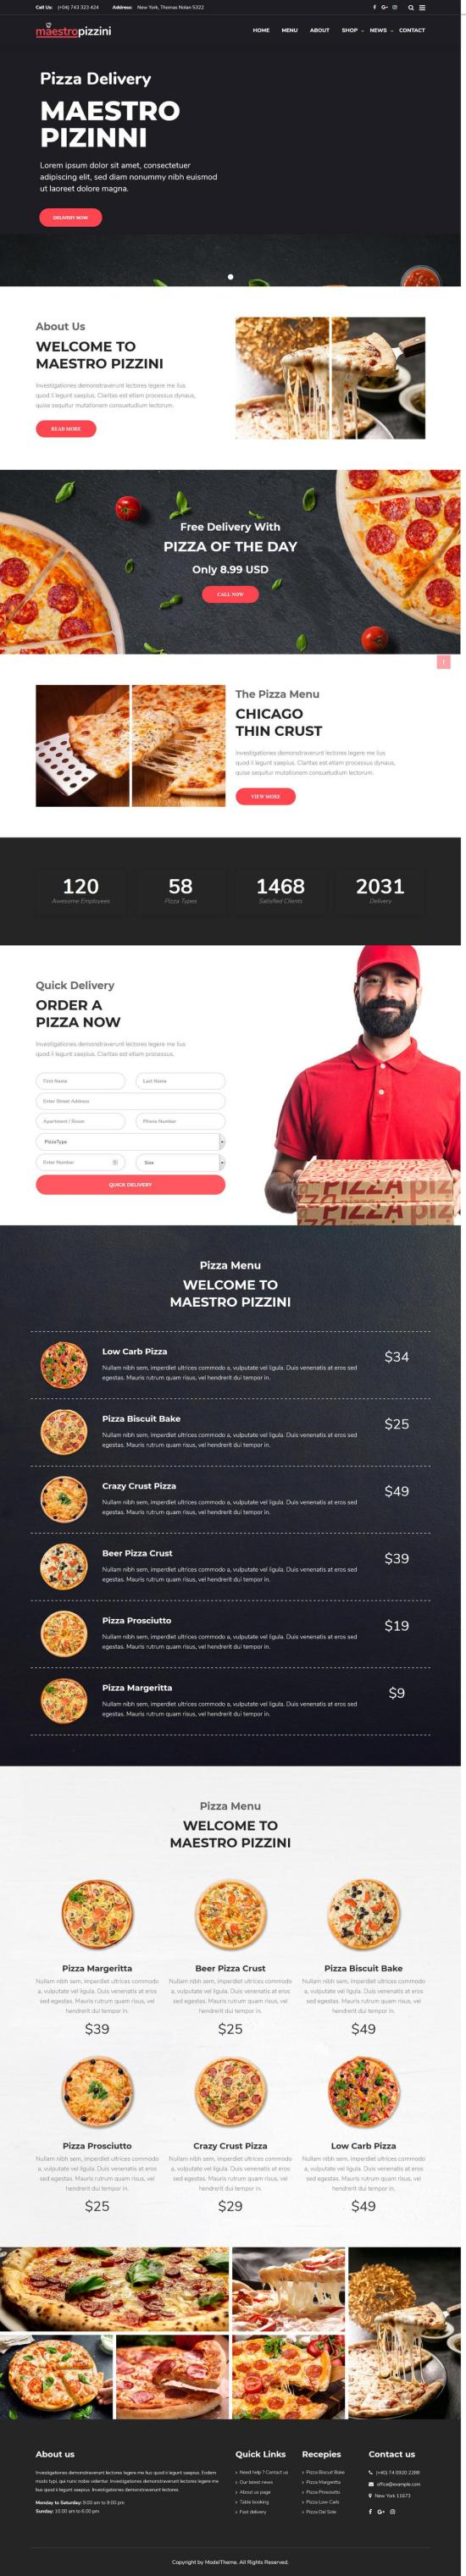 MaestroPizzini Restaurant WordPress Theme